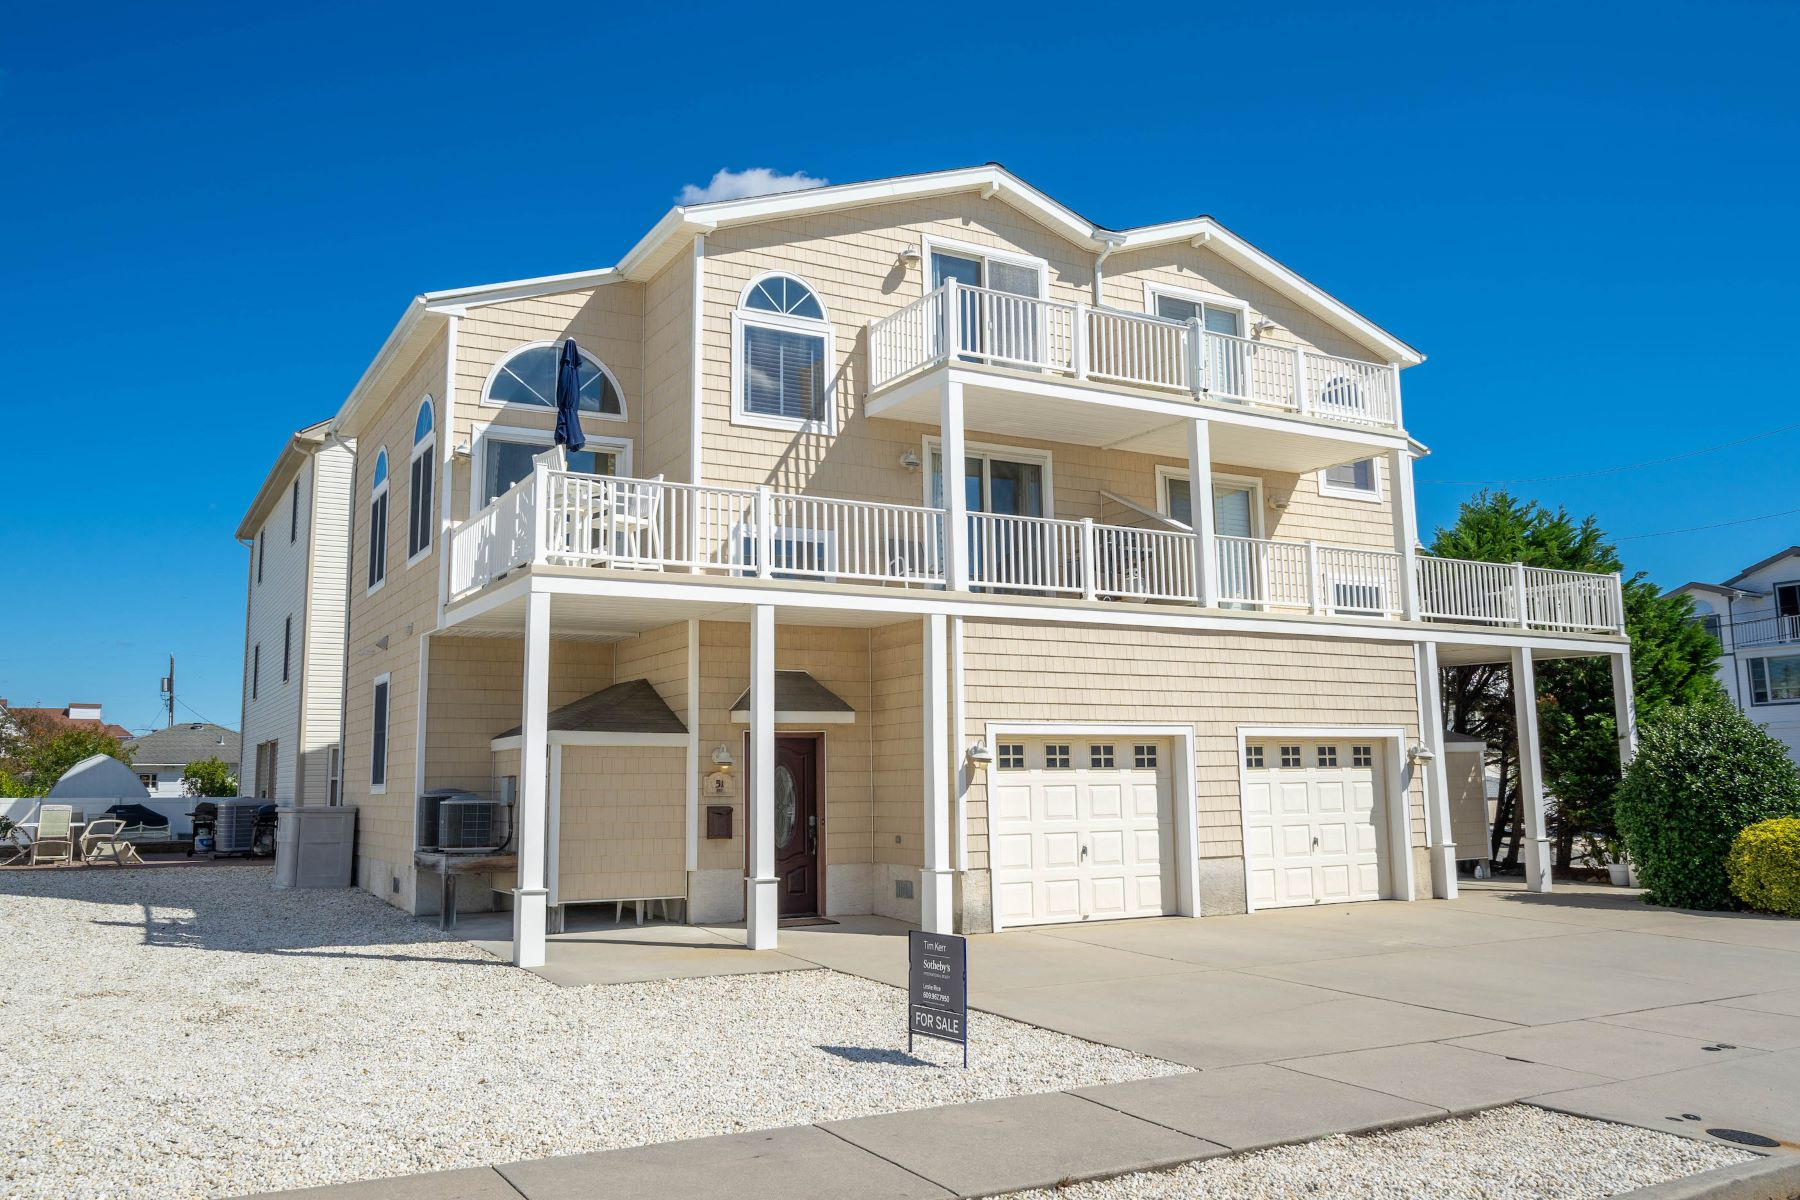 townhouses 为 销售 在 Sea Isle City Townhome 51 83rd Street West Unit, Sea Isle City, 新泽西州 08243 美国